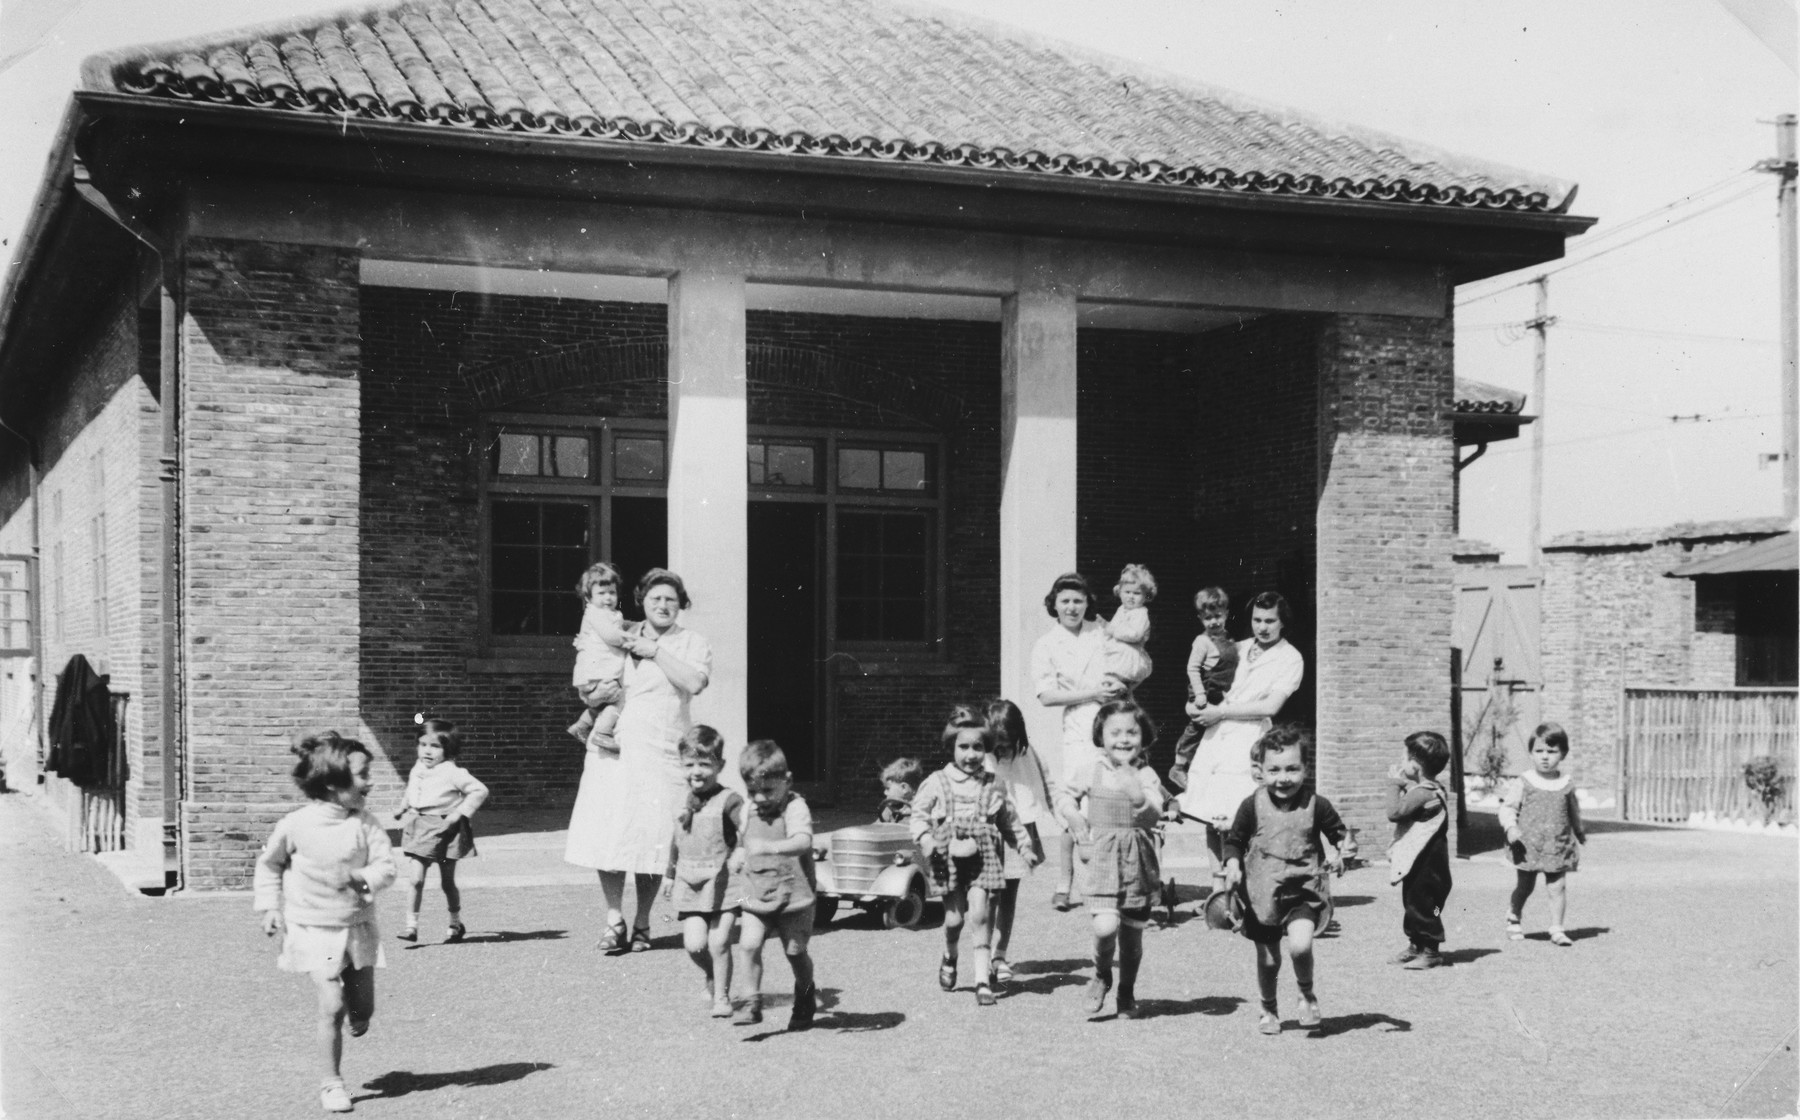 """Children and staff of the International Committee creche for Jewish refugees in Shanghai.  One photograph from the International Committee album, """"Introducing the I.C. Staff"""" presented to I.C. secretary Paul Komor on August 7, 1941 in Shanghai."""